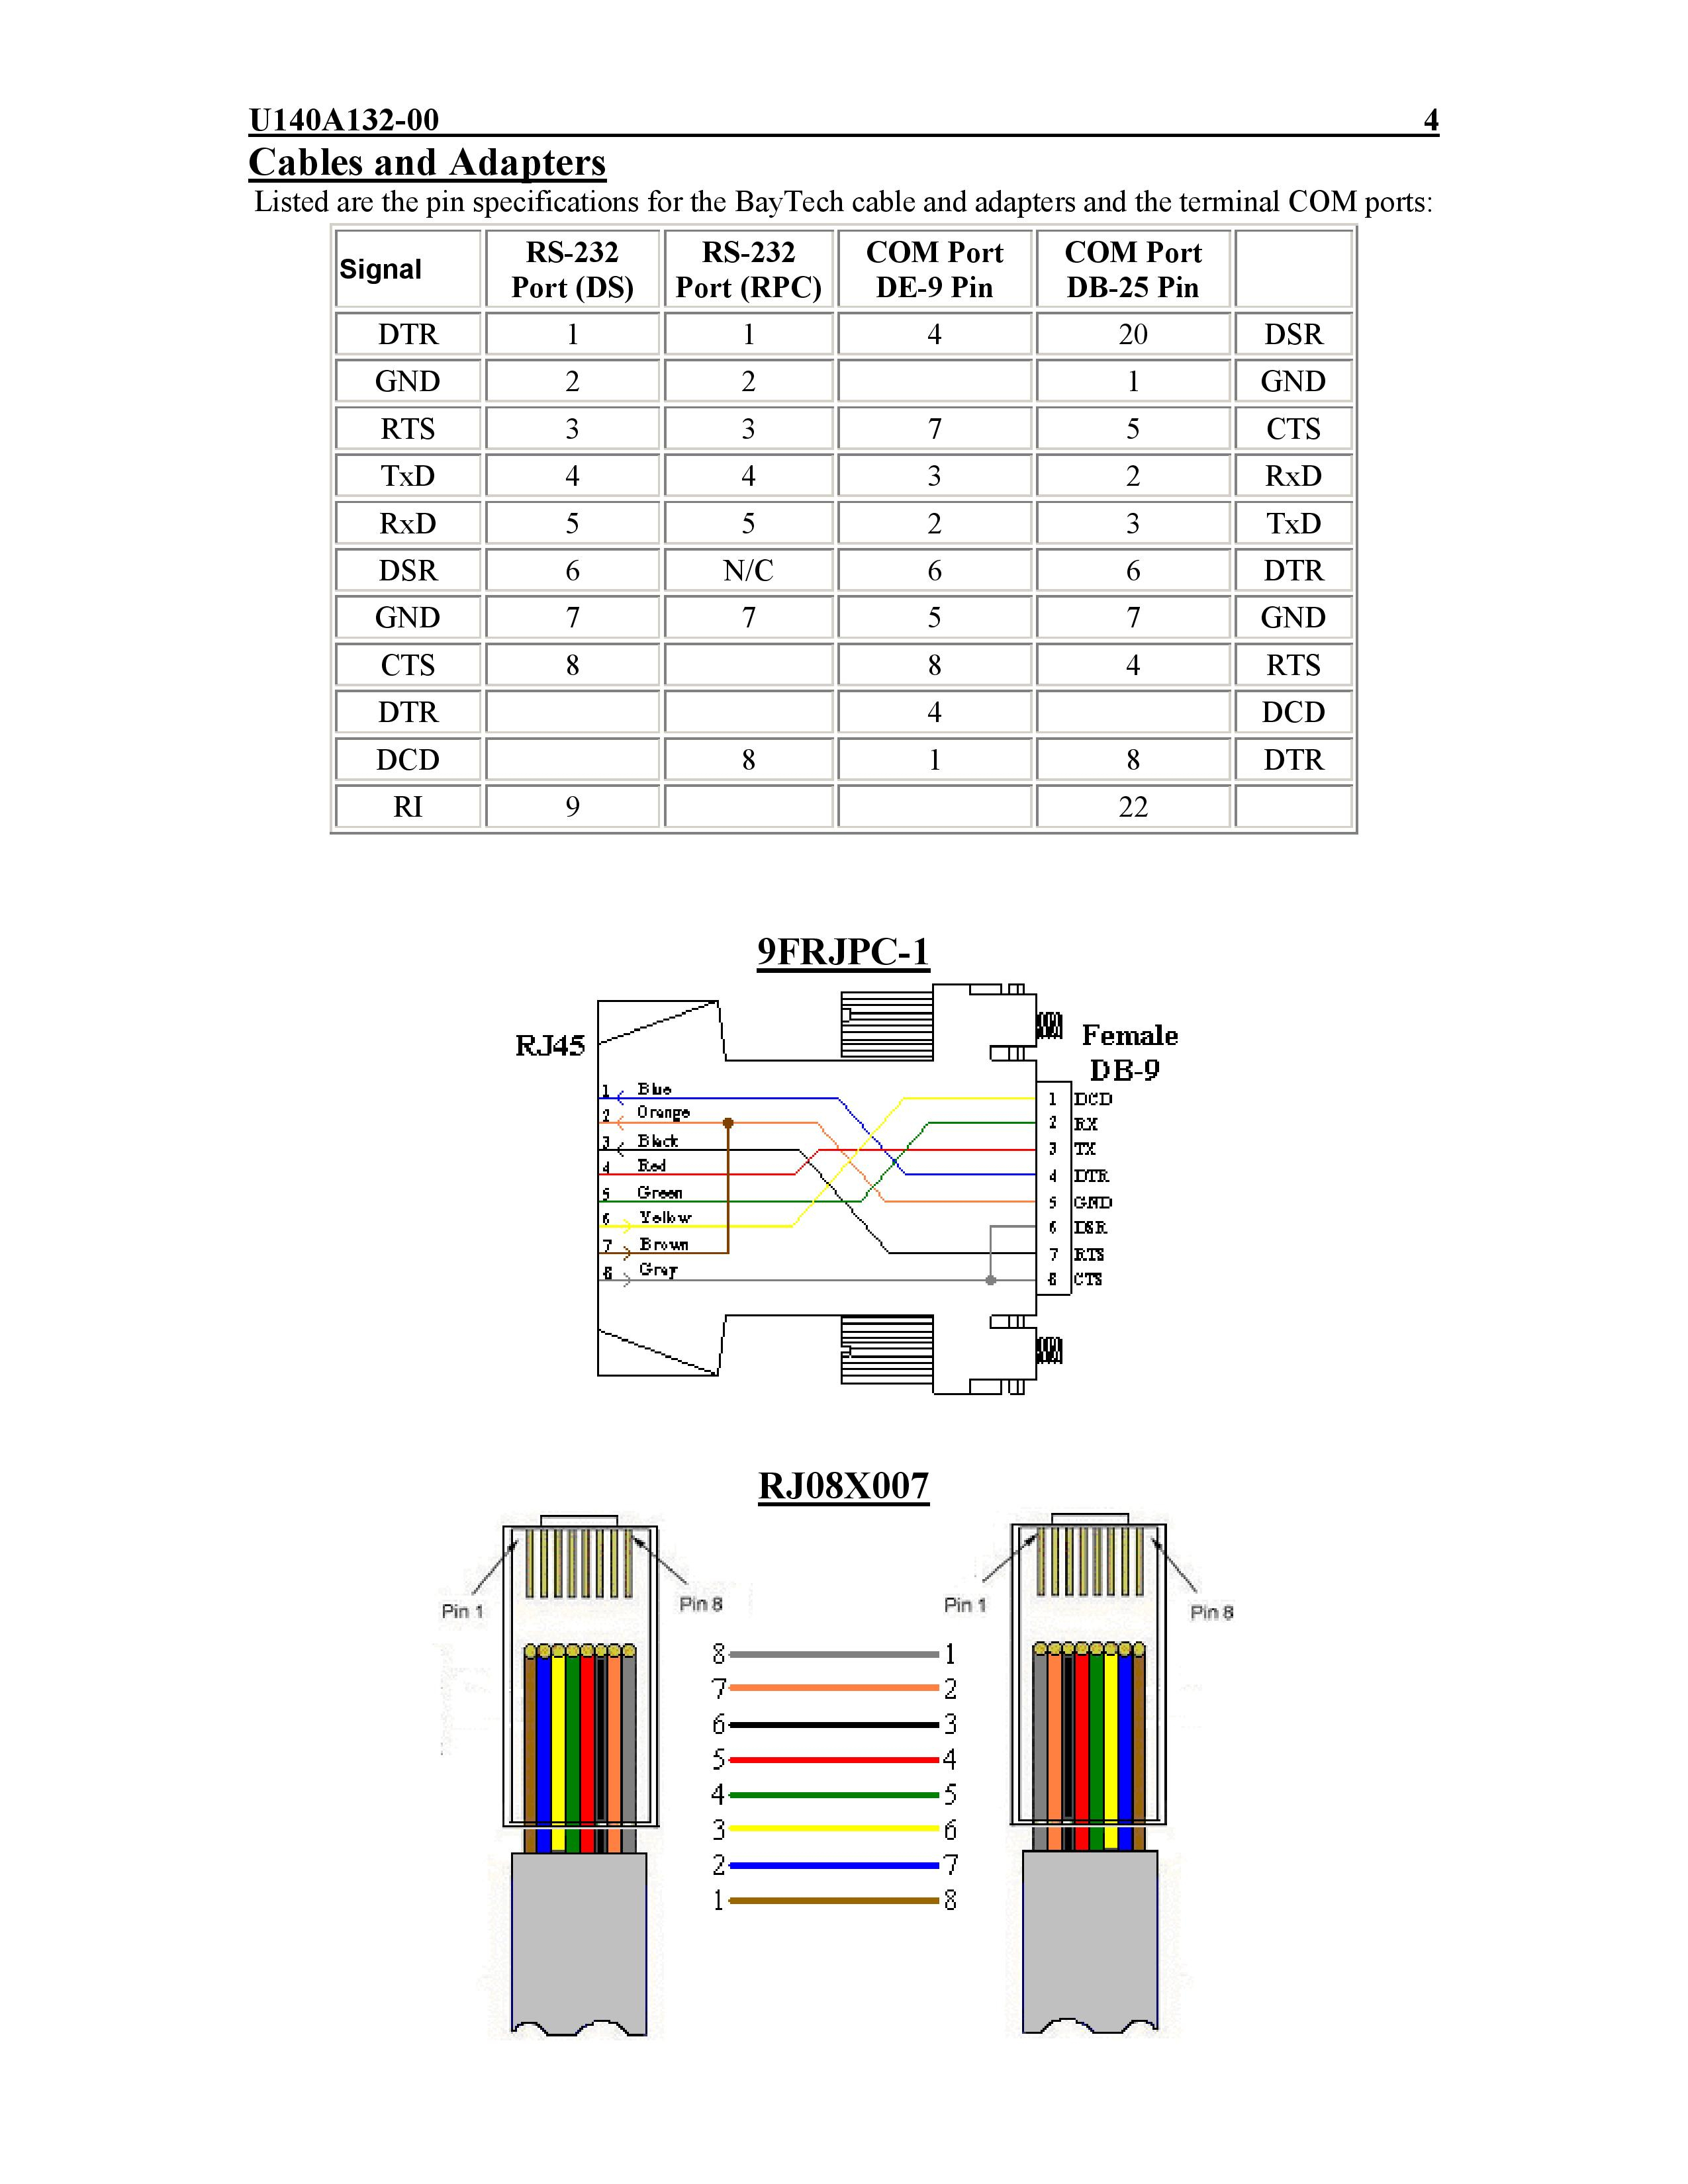 Parallel Printer Cable Wiring Diagram | Wiring Library - Usb To Parallel Printer Cable Wiring Diagram